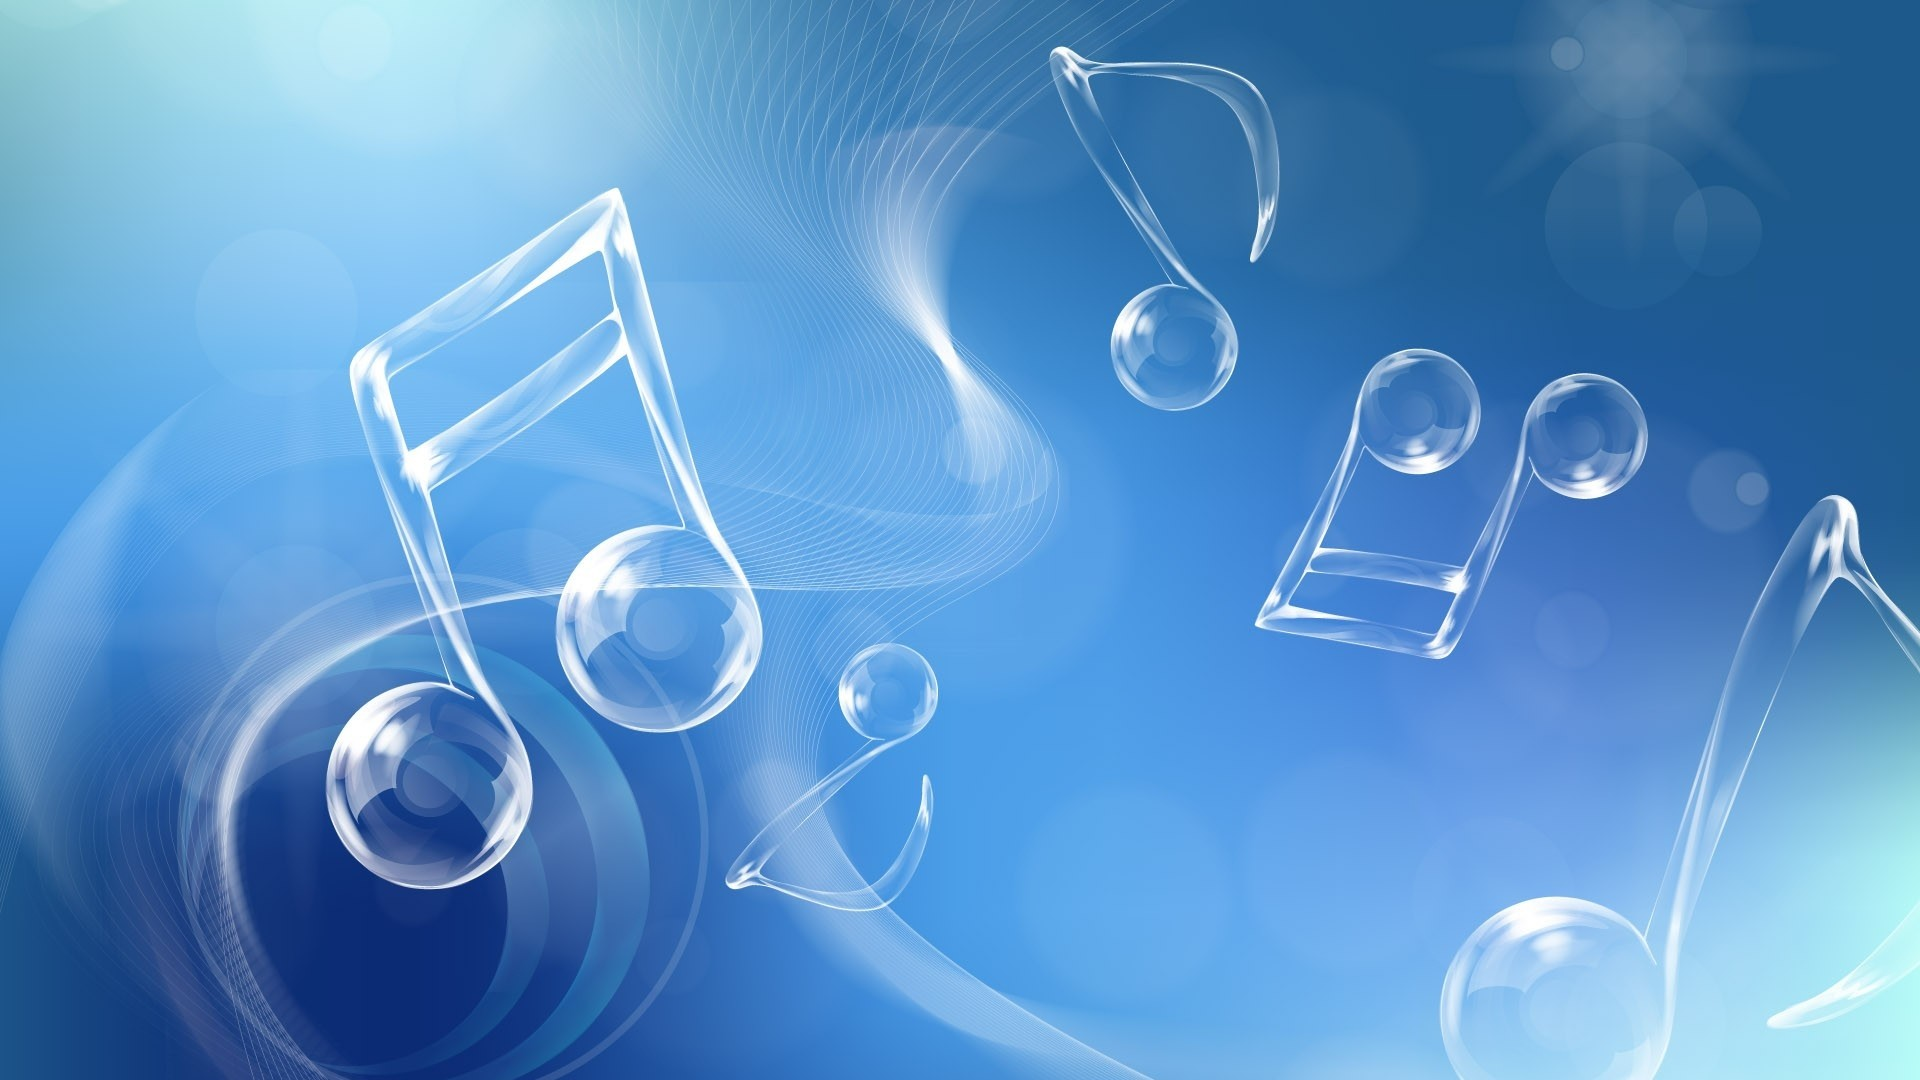 1920x1080 blue_white_music_shapes_282_.jpg ...